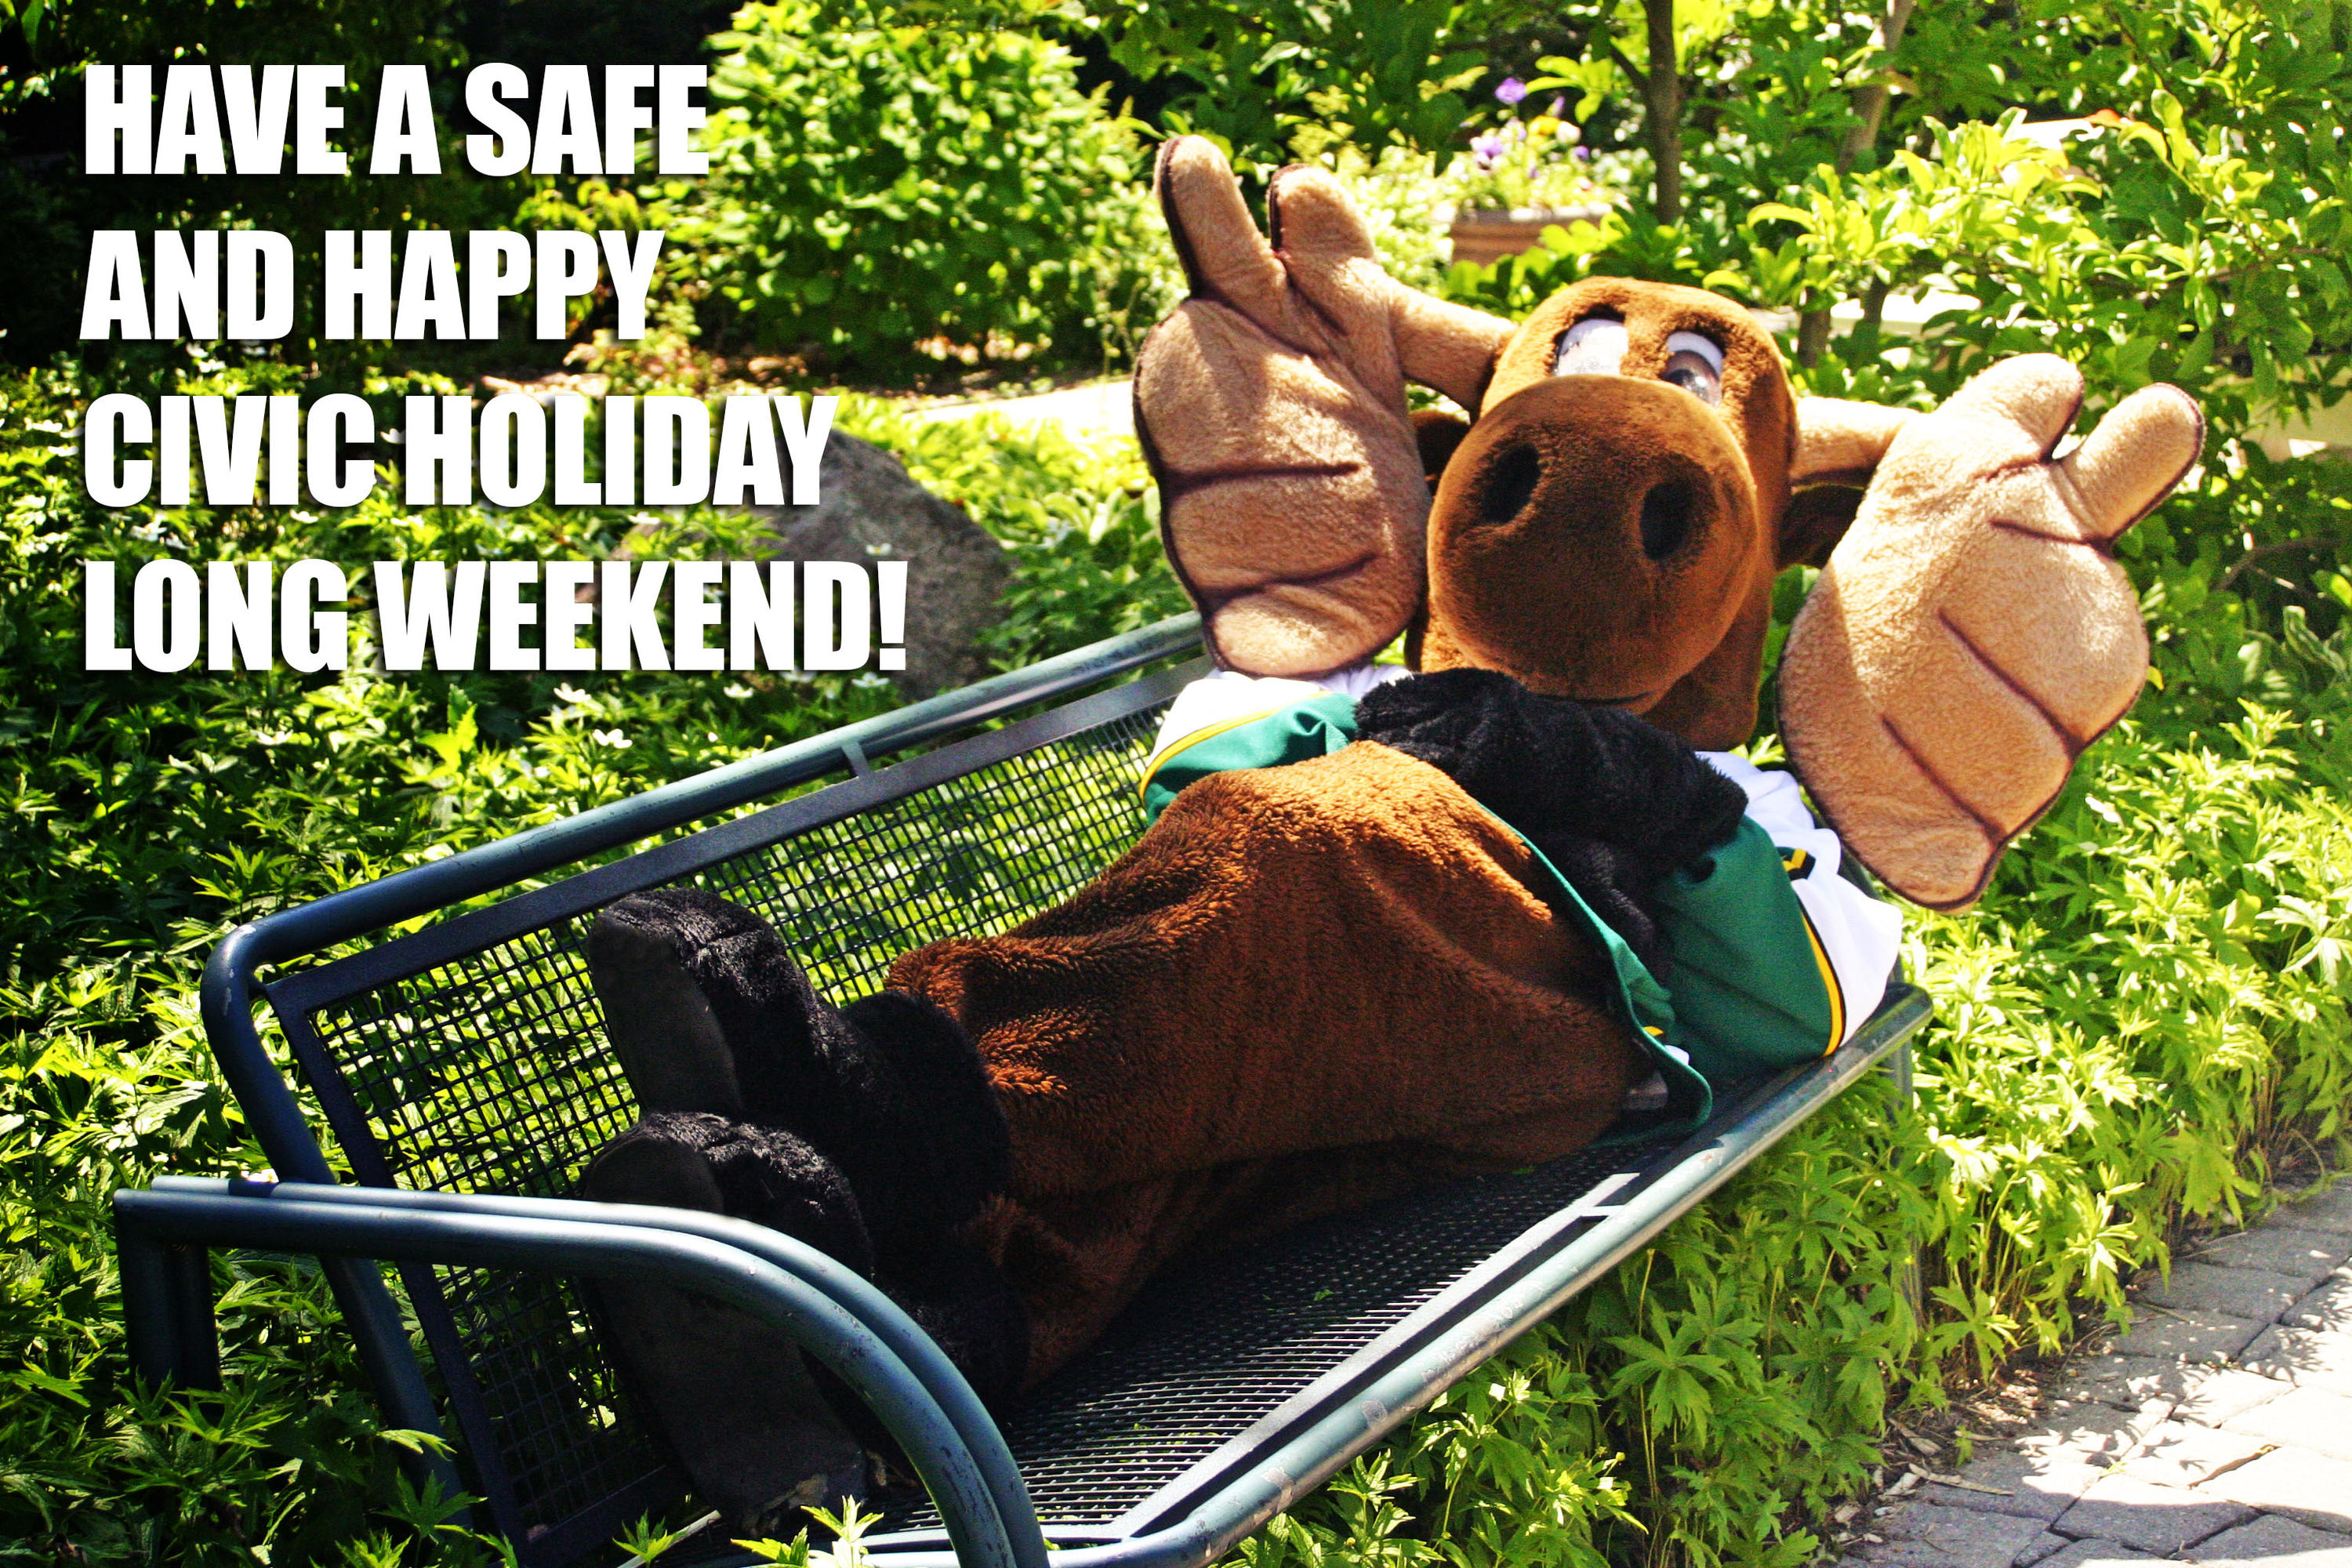 Reni moose lying on a bench in the garden. Image reads: have a safe and happy civic holiday long weekend.